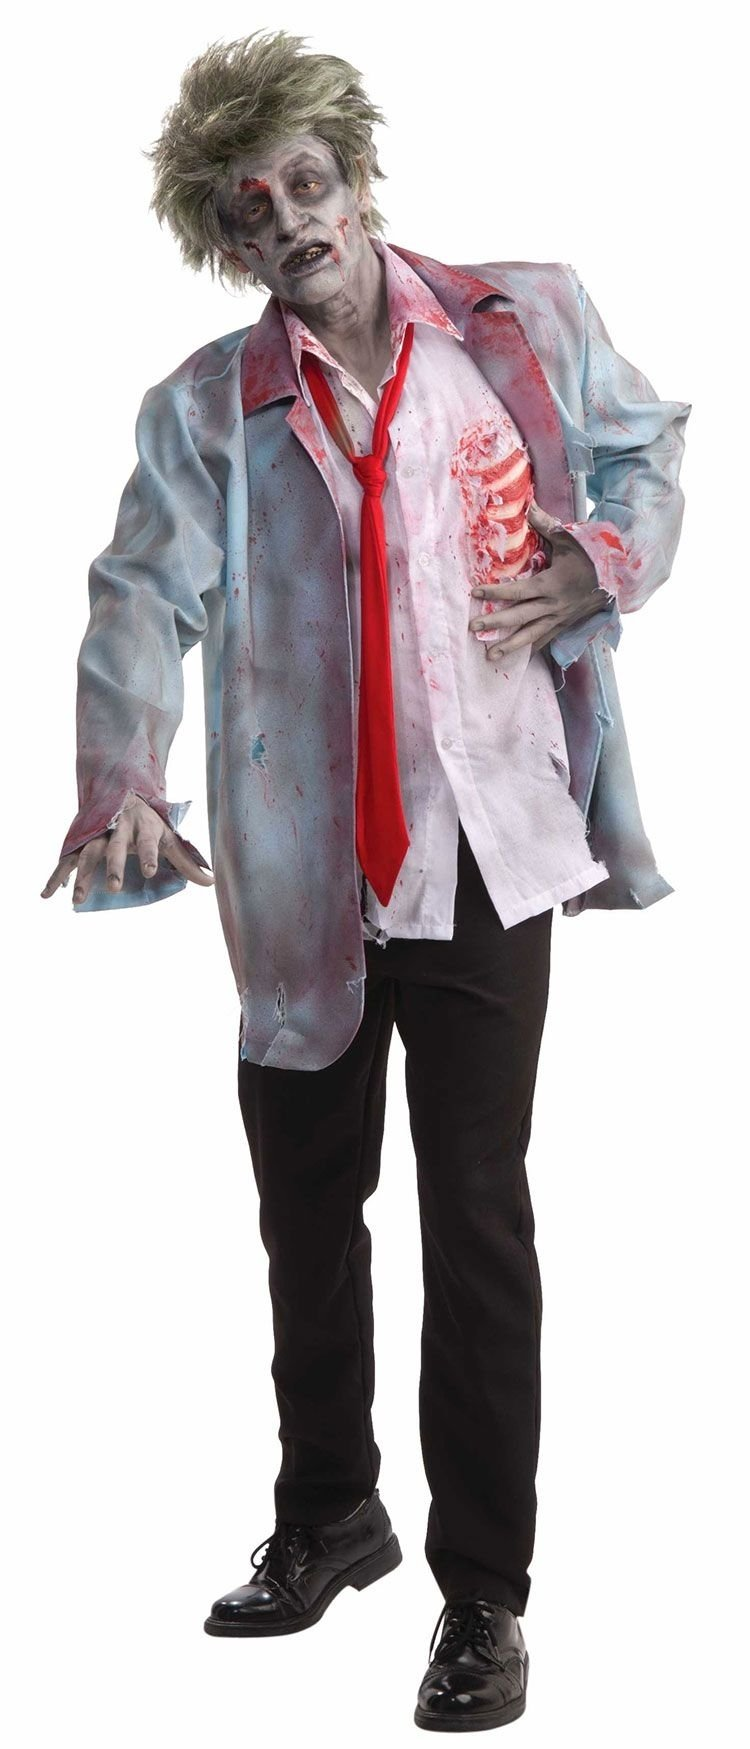 10 Fashionable Zombie Costume Ideas For Men man zombie costume halloween full hd for kids men women smartphone 2020